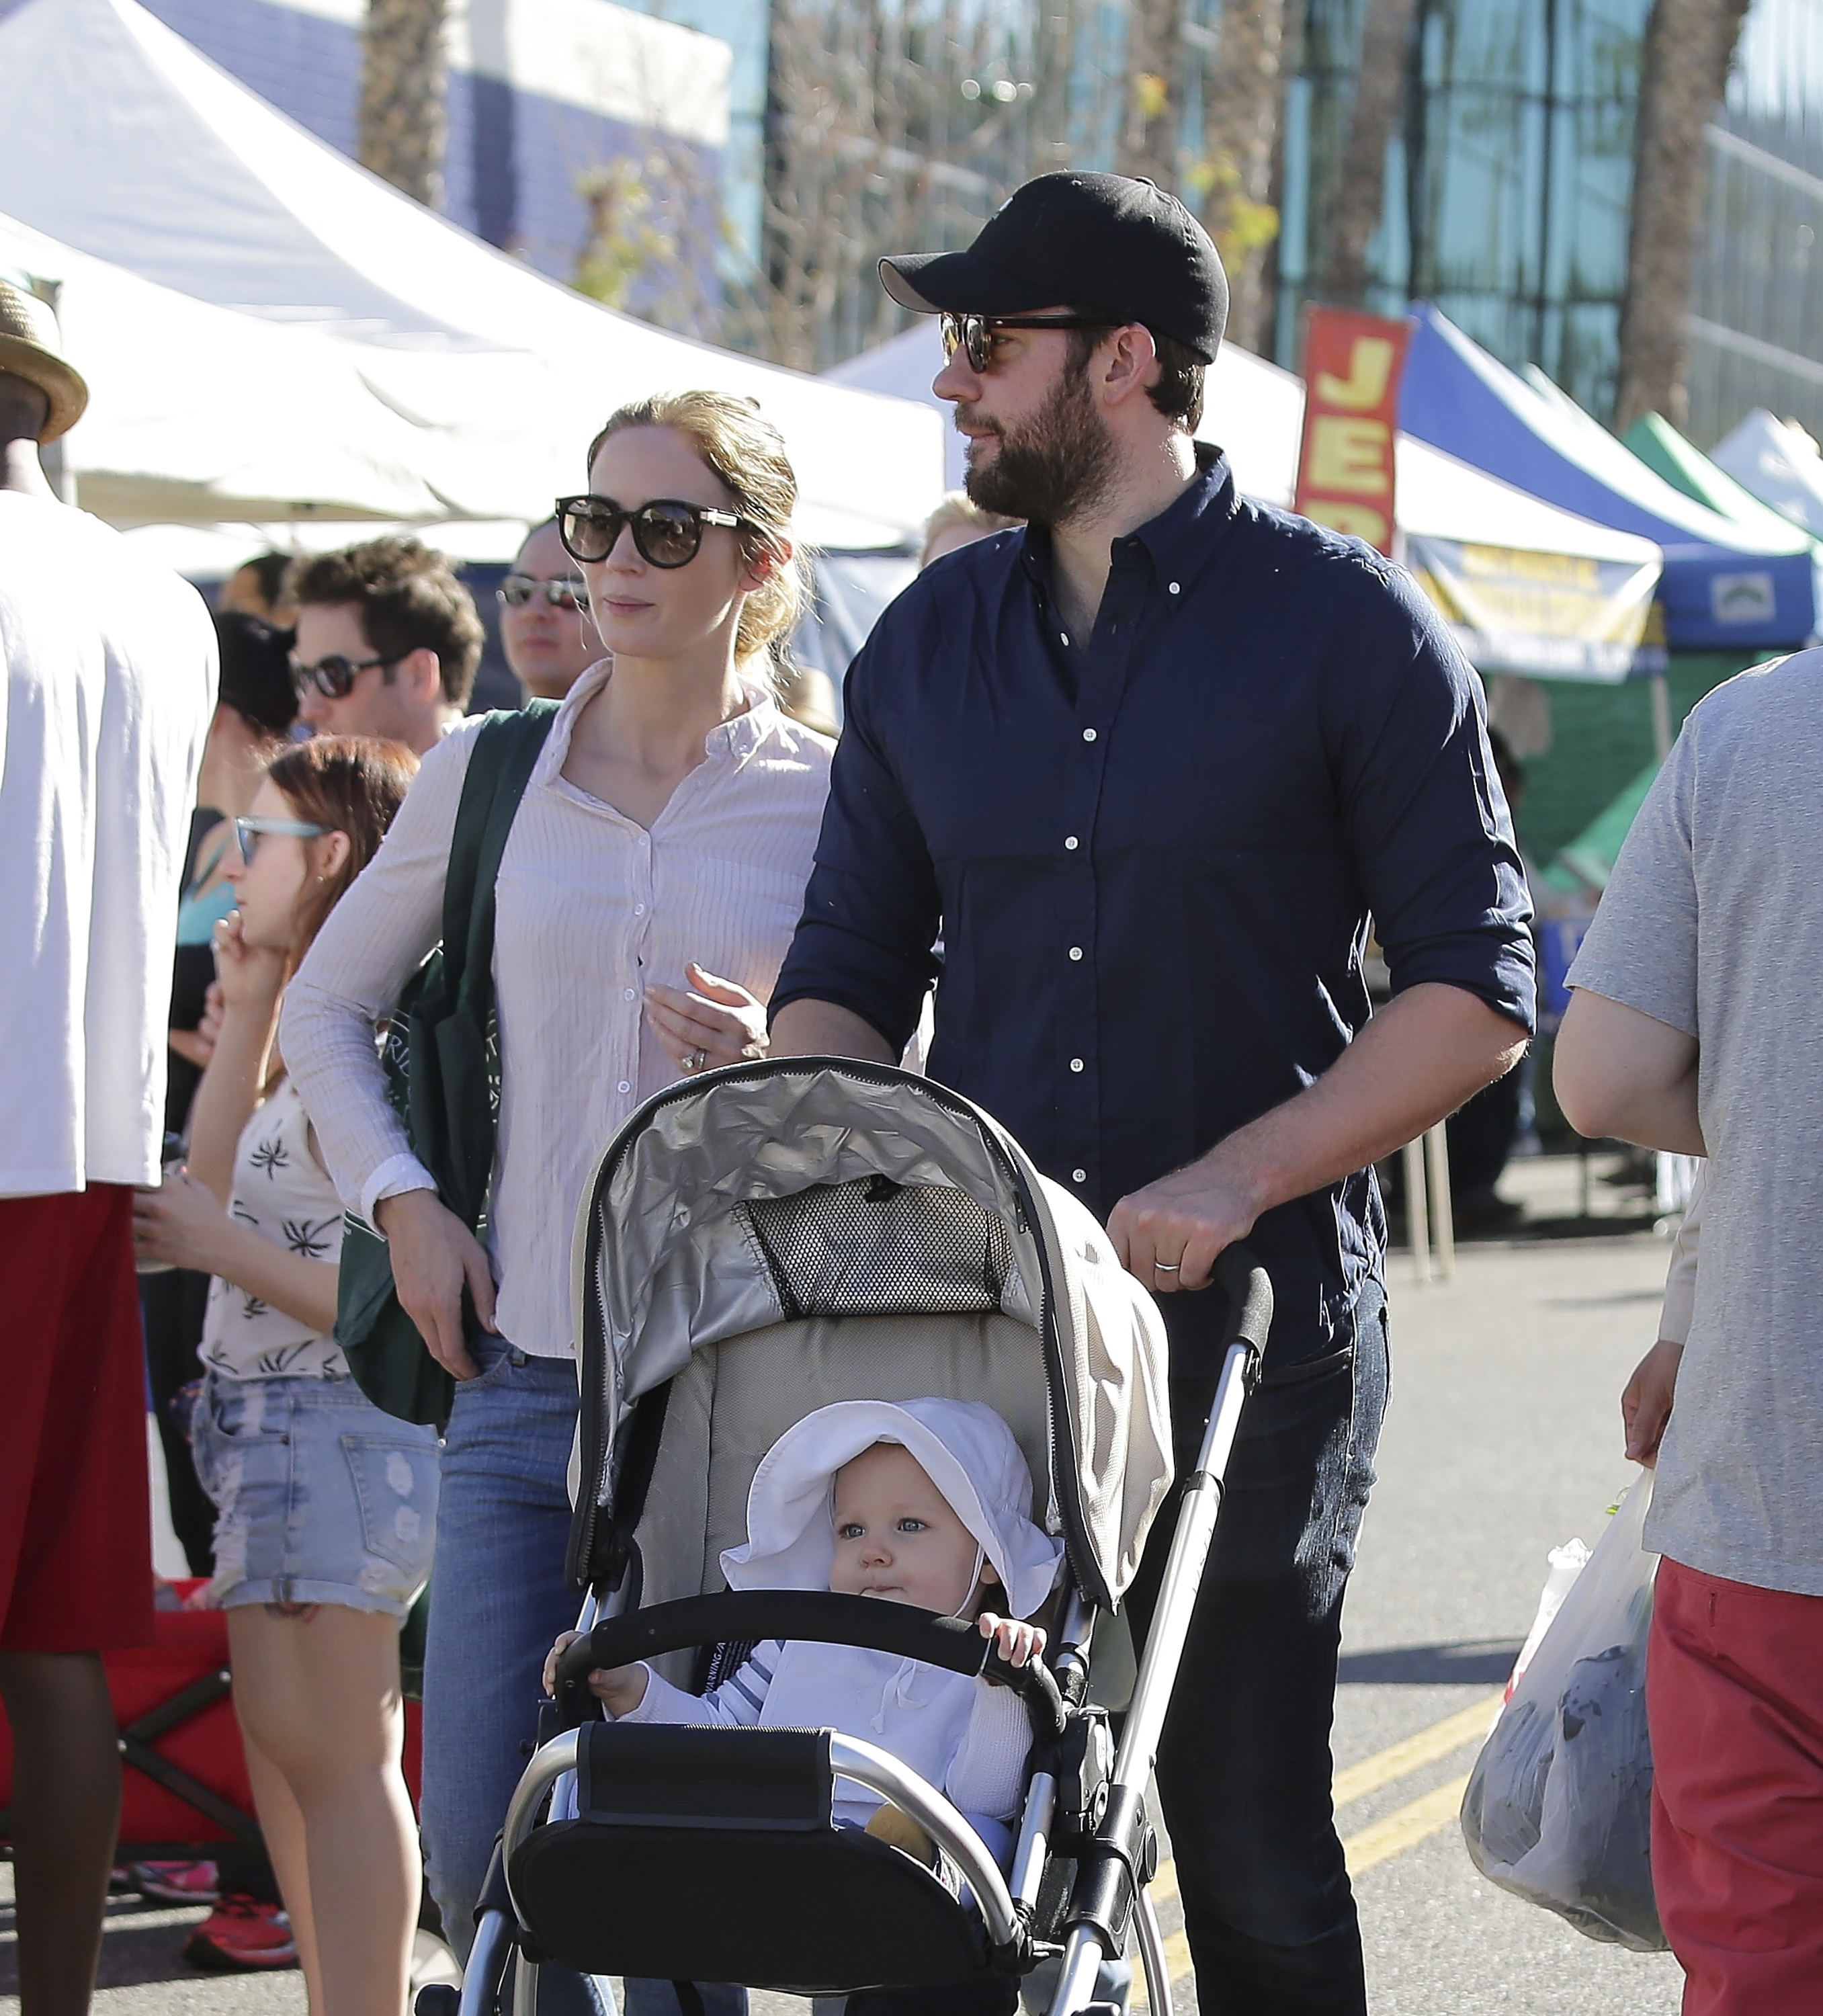 John Krasinski on what he hopes his daughters will admire most about him: